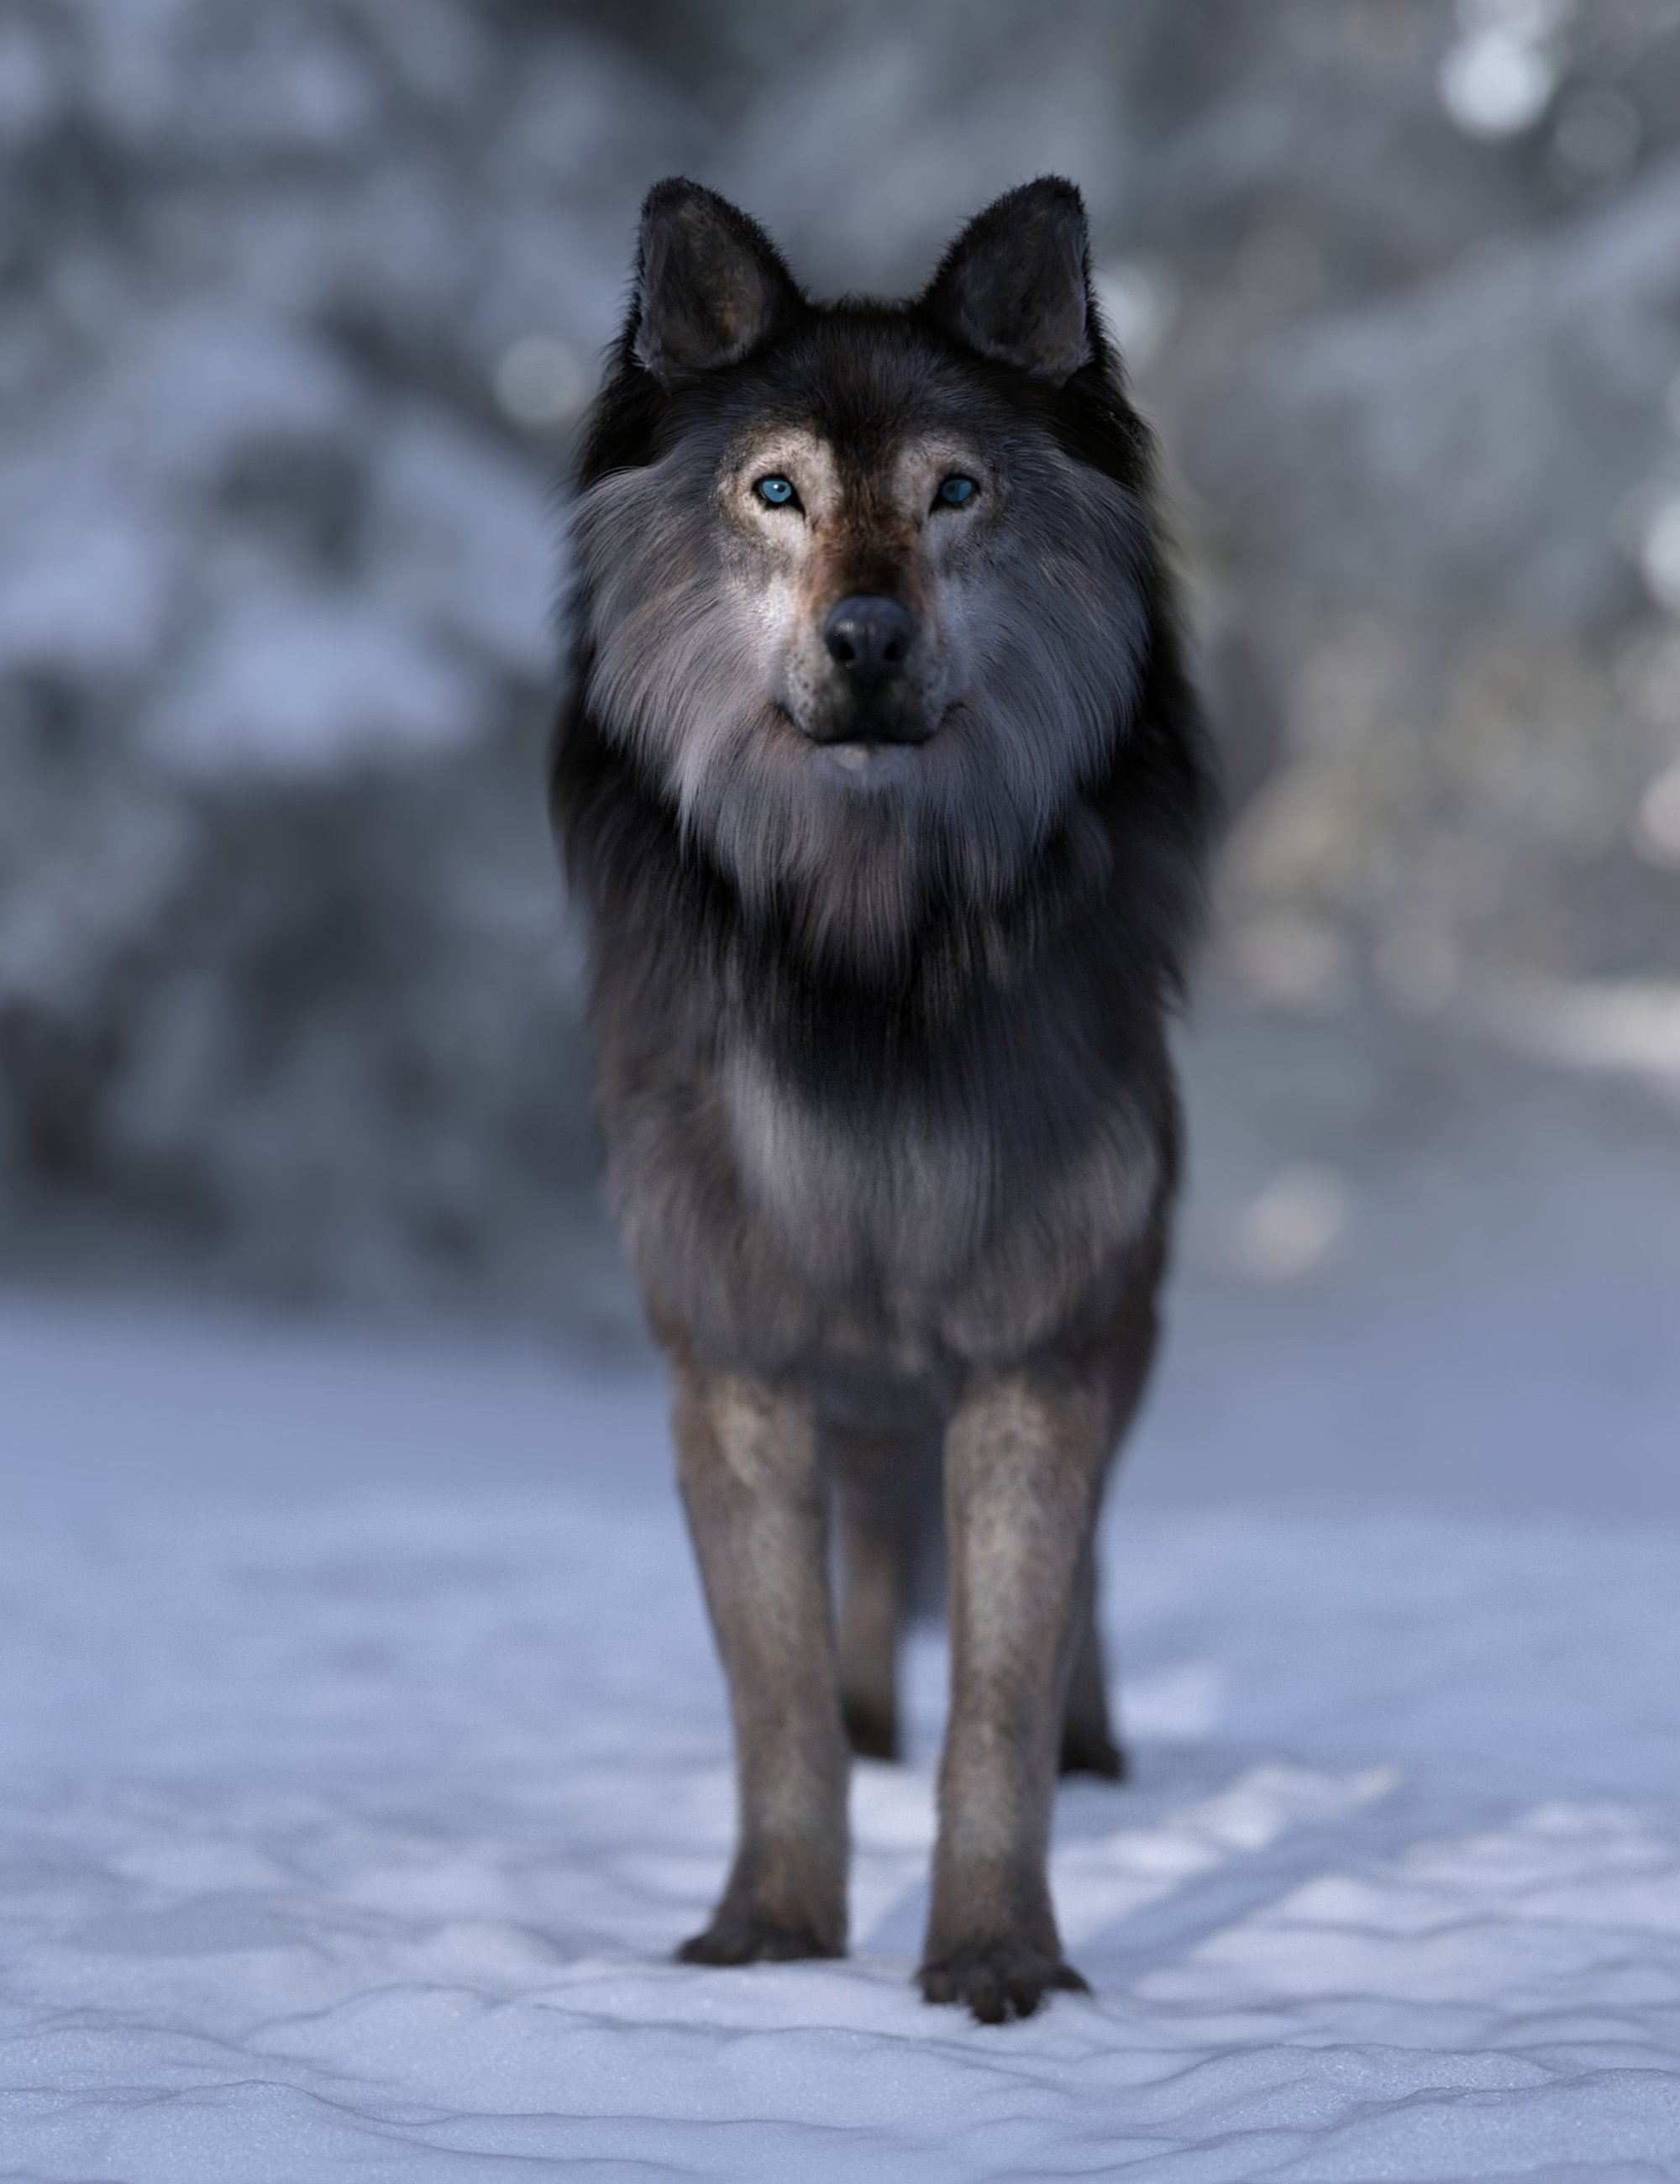 Dire Wolf for Daz Dog 8 by: Alessandro_AM, 3D Models by Daz 3D